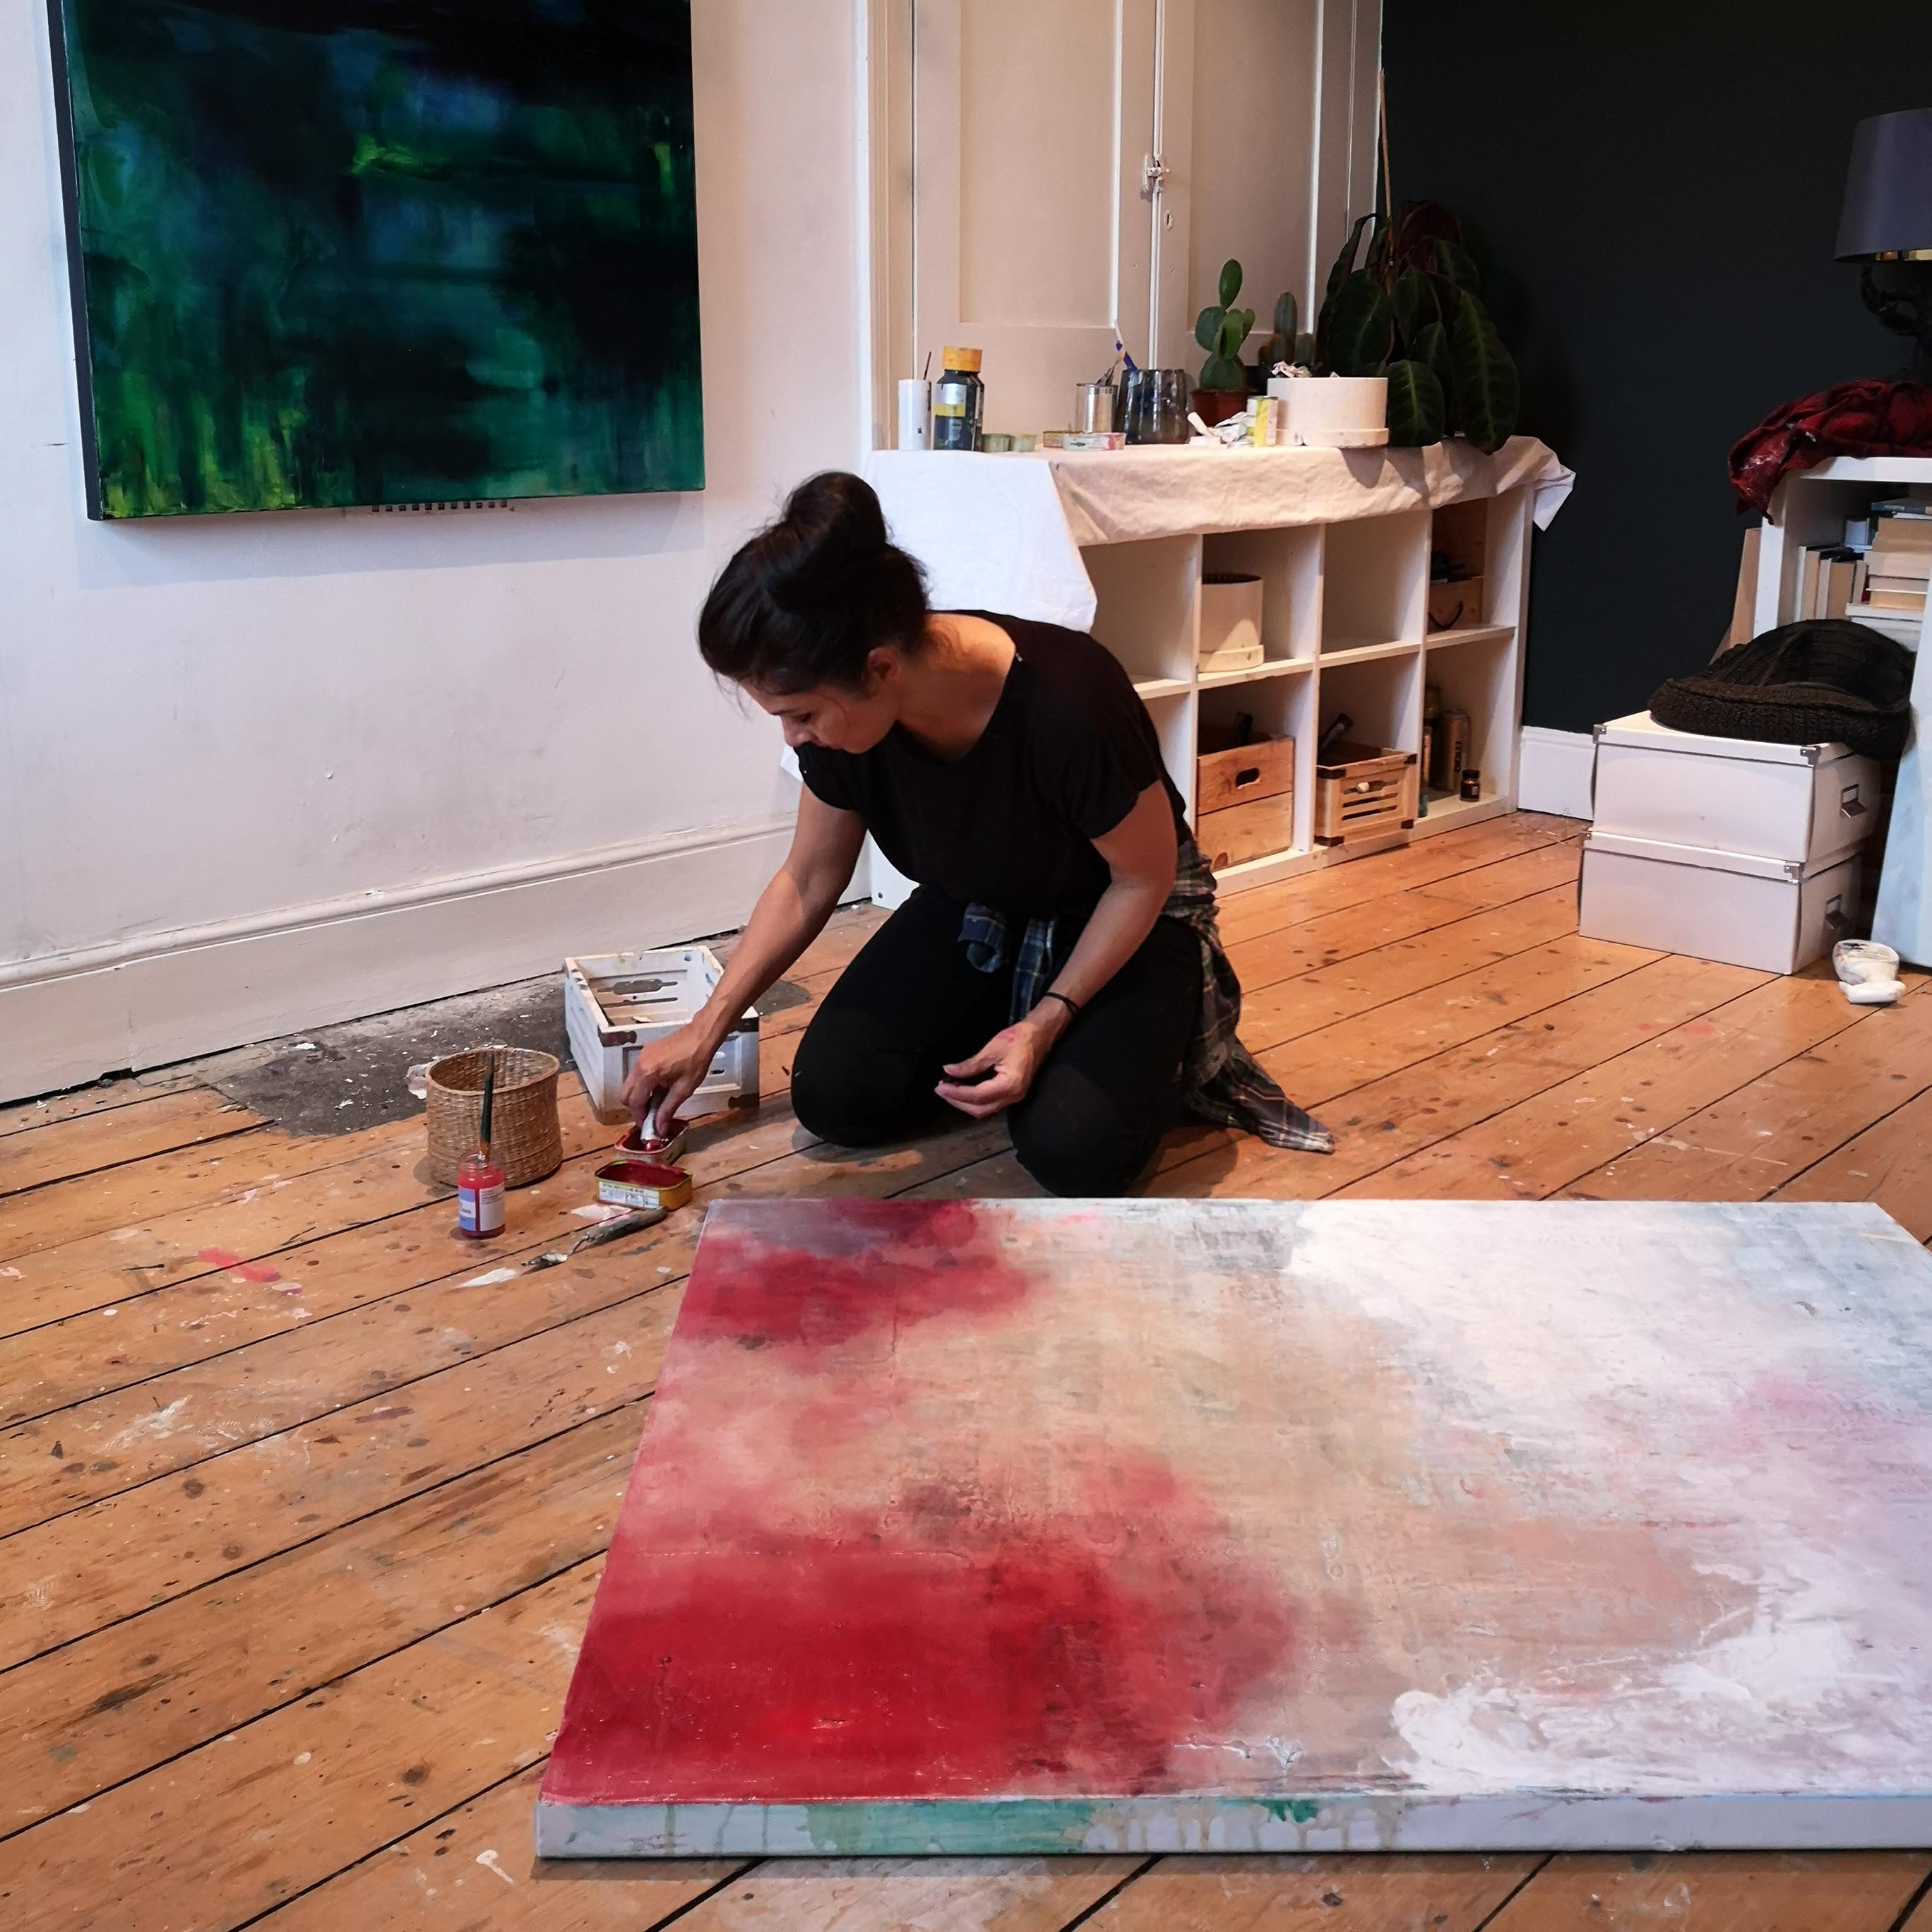 Artist Julia Swaby creating a painting